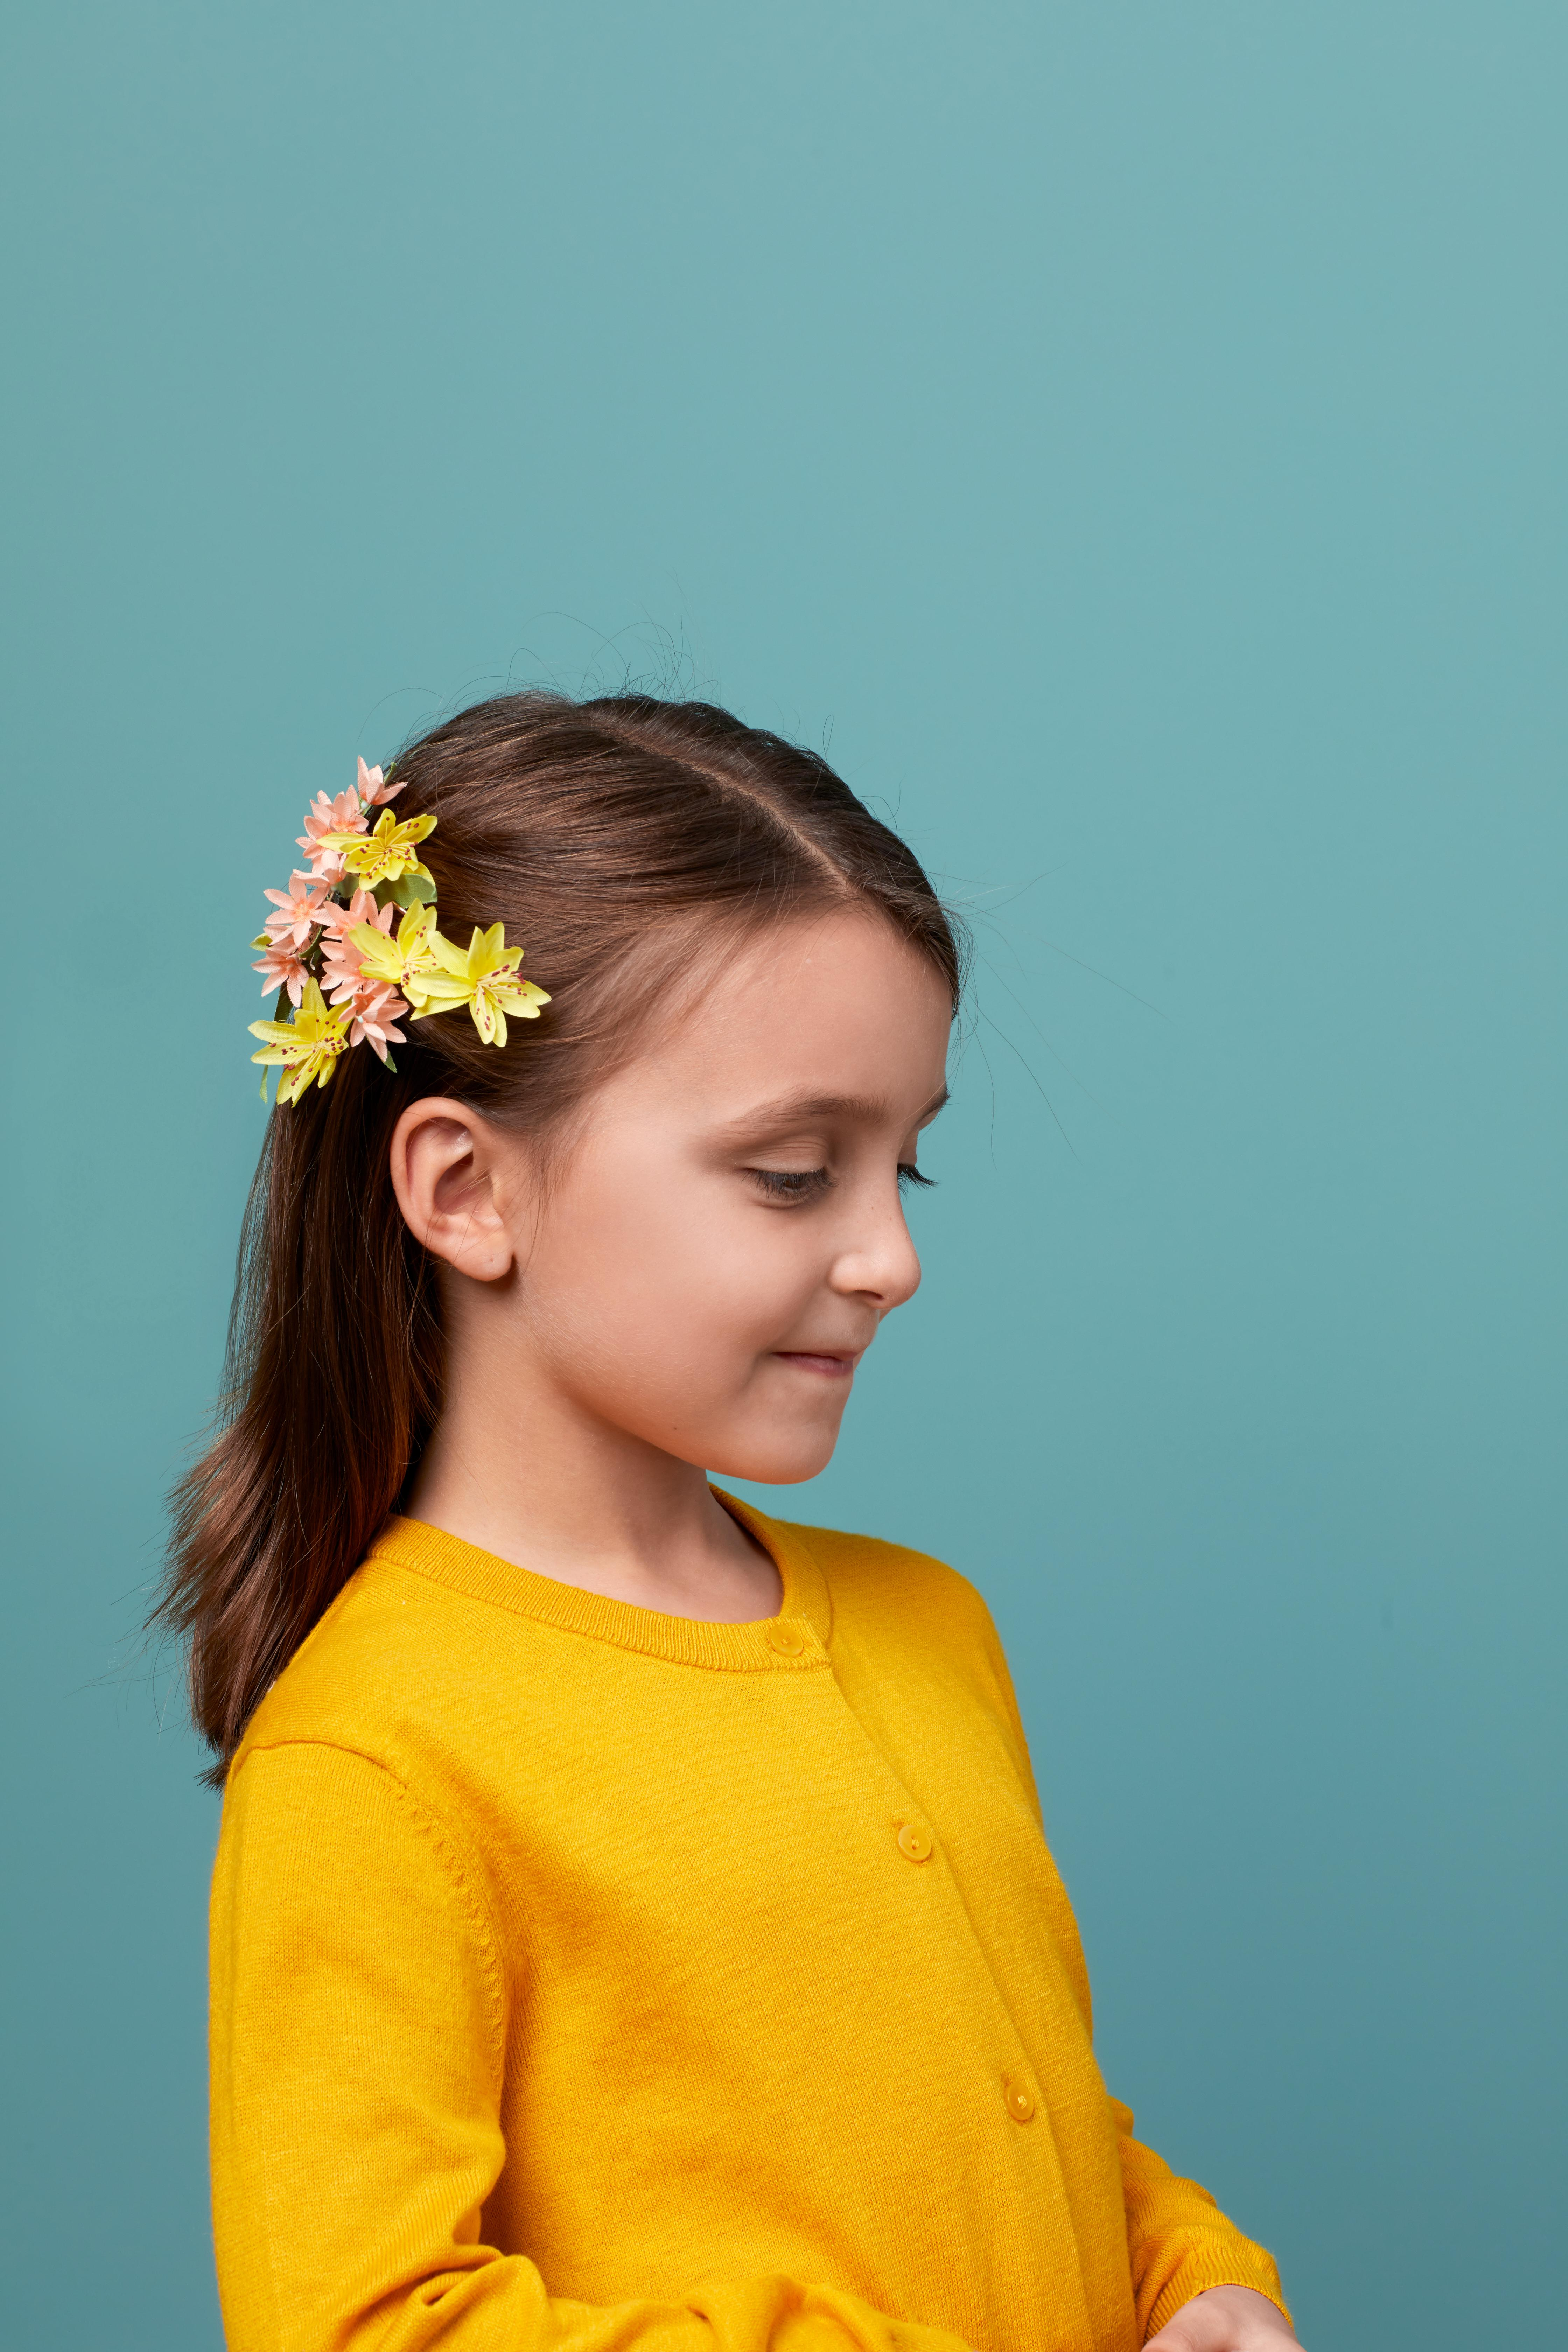 girl with yellow shirt wearing flower pin in hair